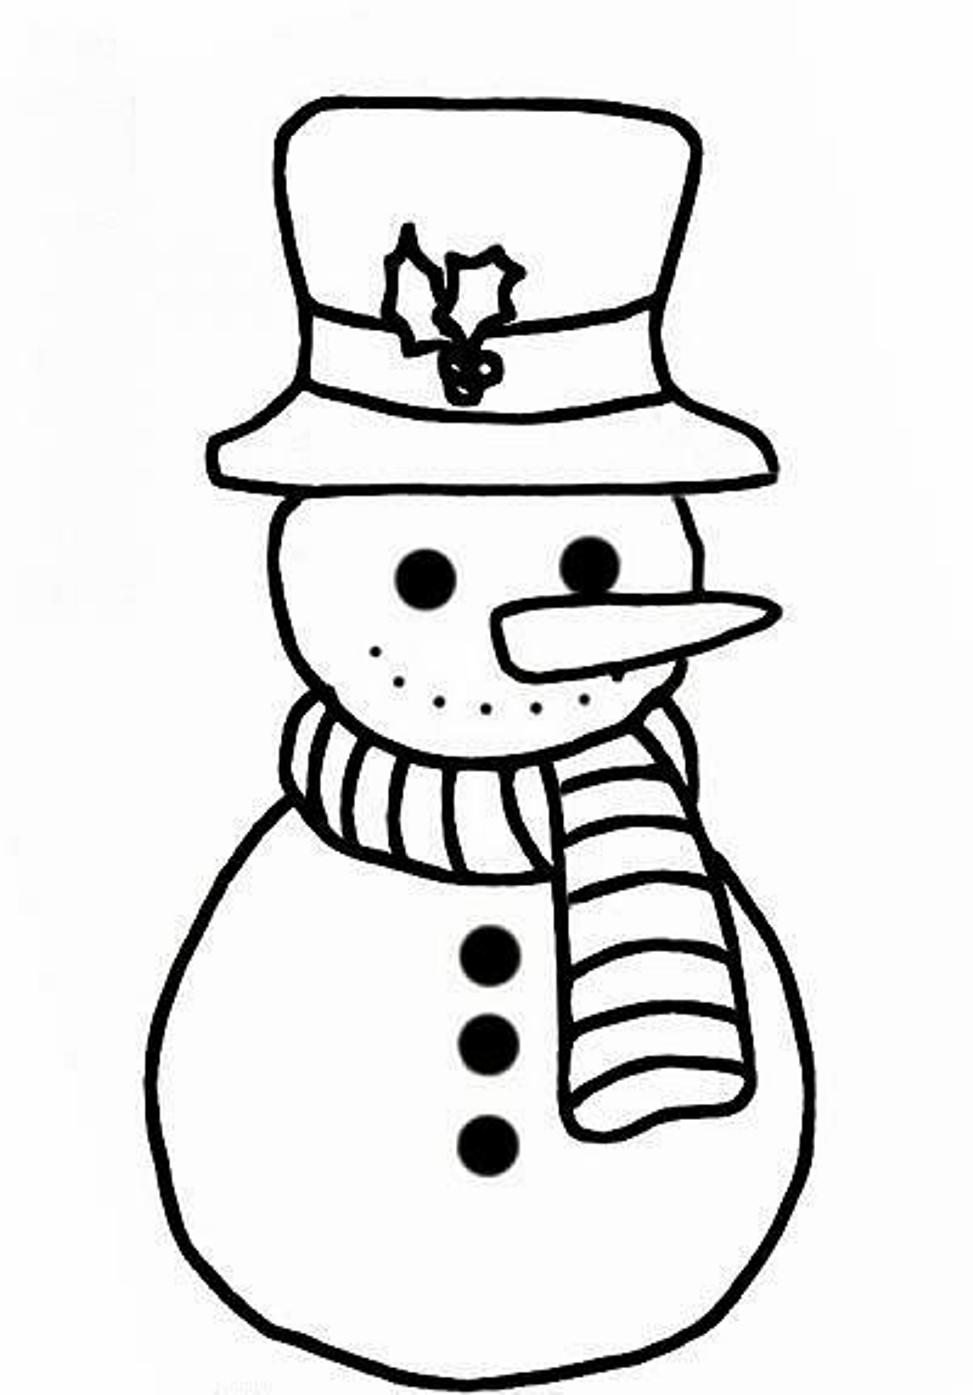 cartoon snowman coloring pages - snowman drawing images at free for